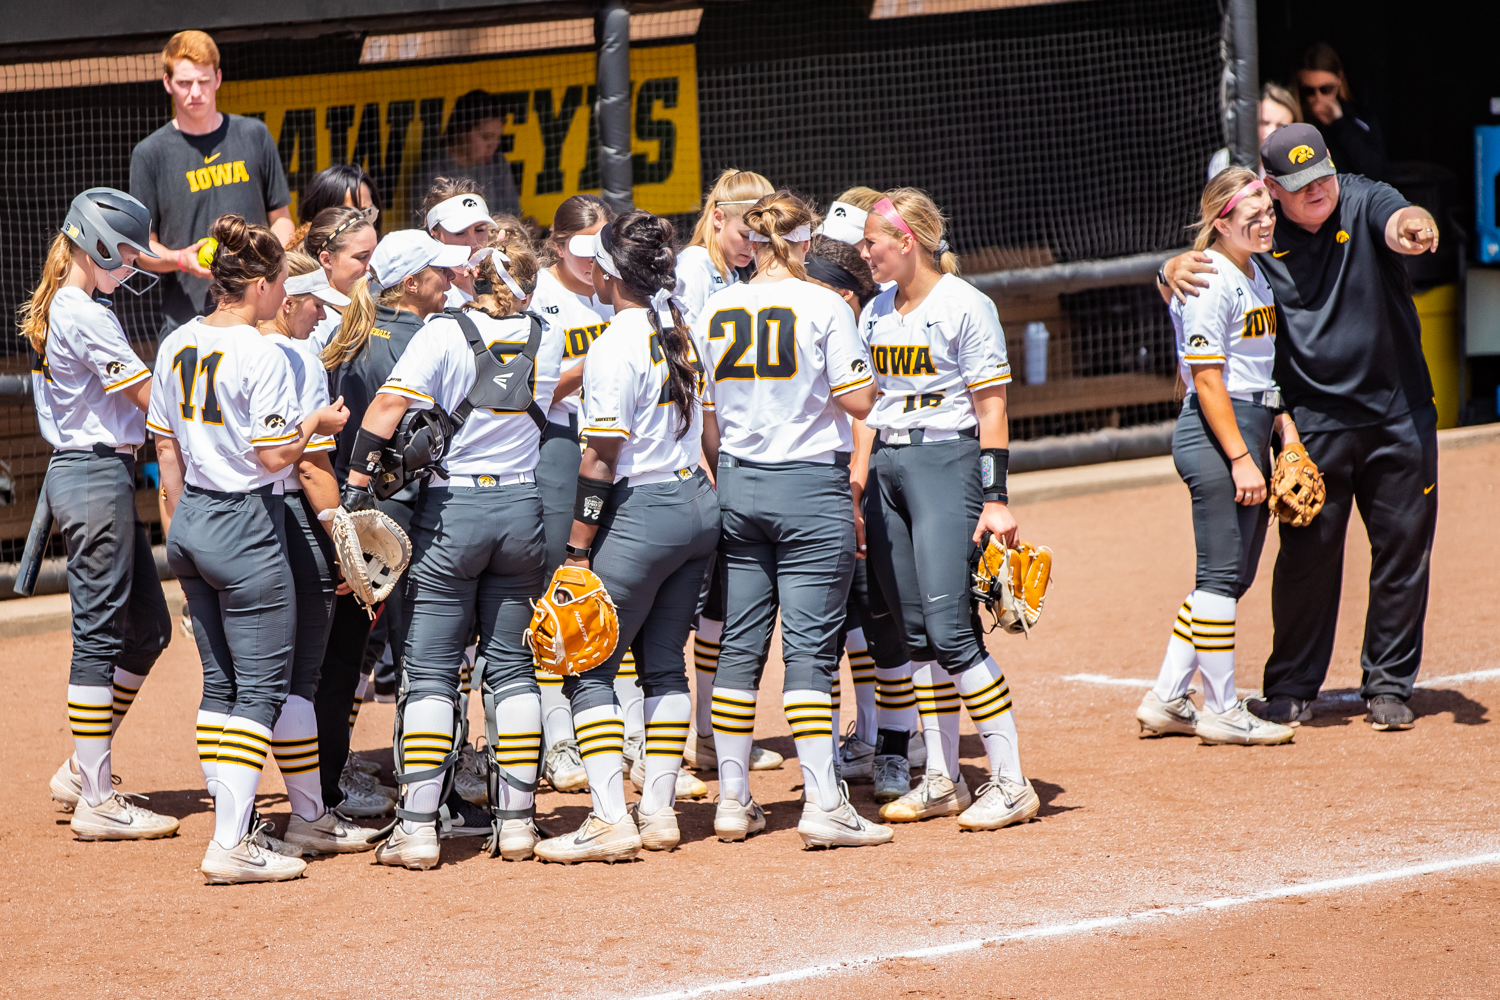 Iowa players huddle between innings during a softball game between Iowa and Ohio State at Bob Pearl Field on Sunday, May 5, 2019. The Hawkeyes, celebrating senior day, fell to the Buckeyes, 5-0.